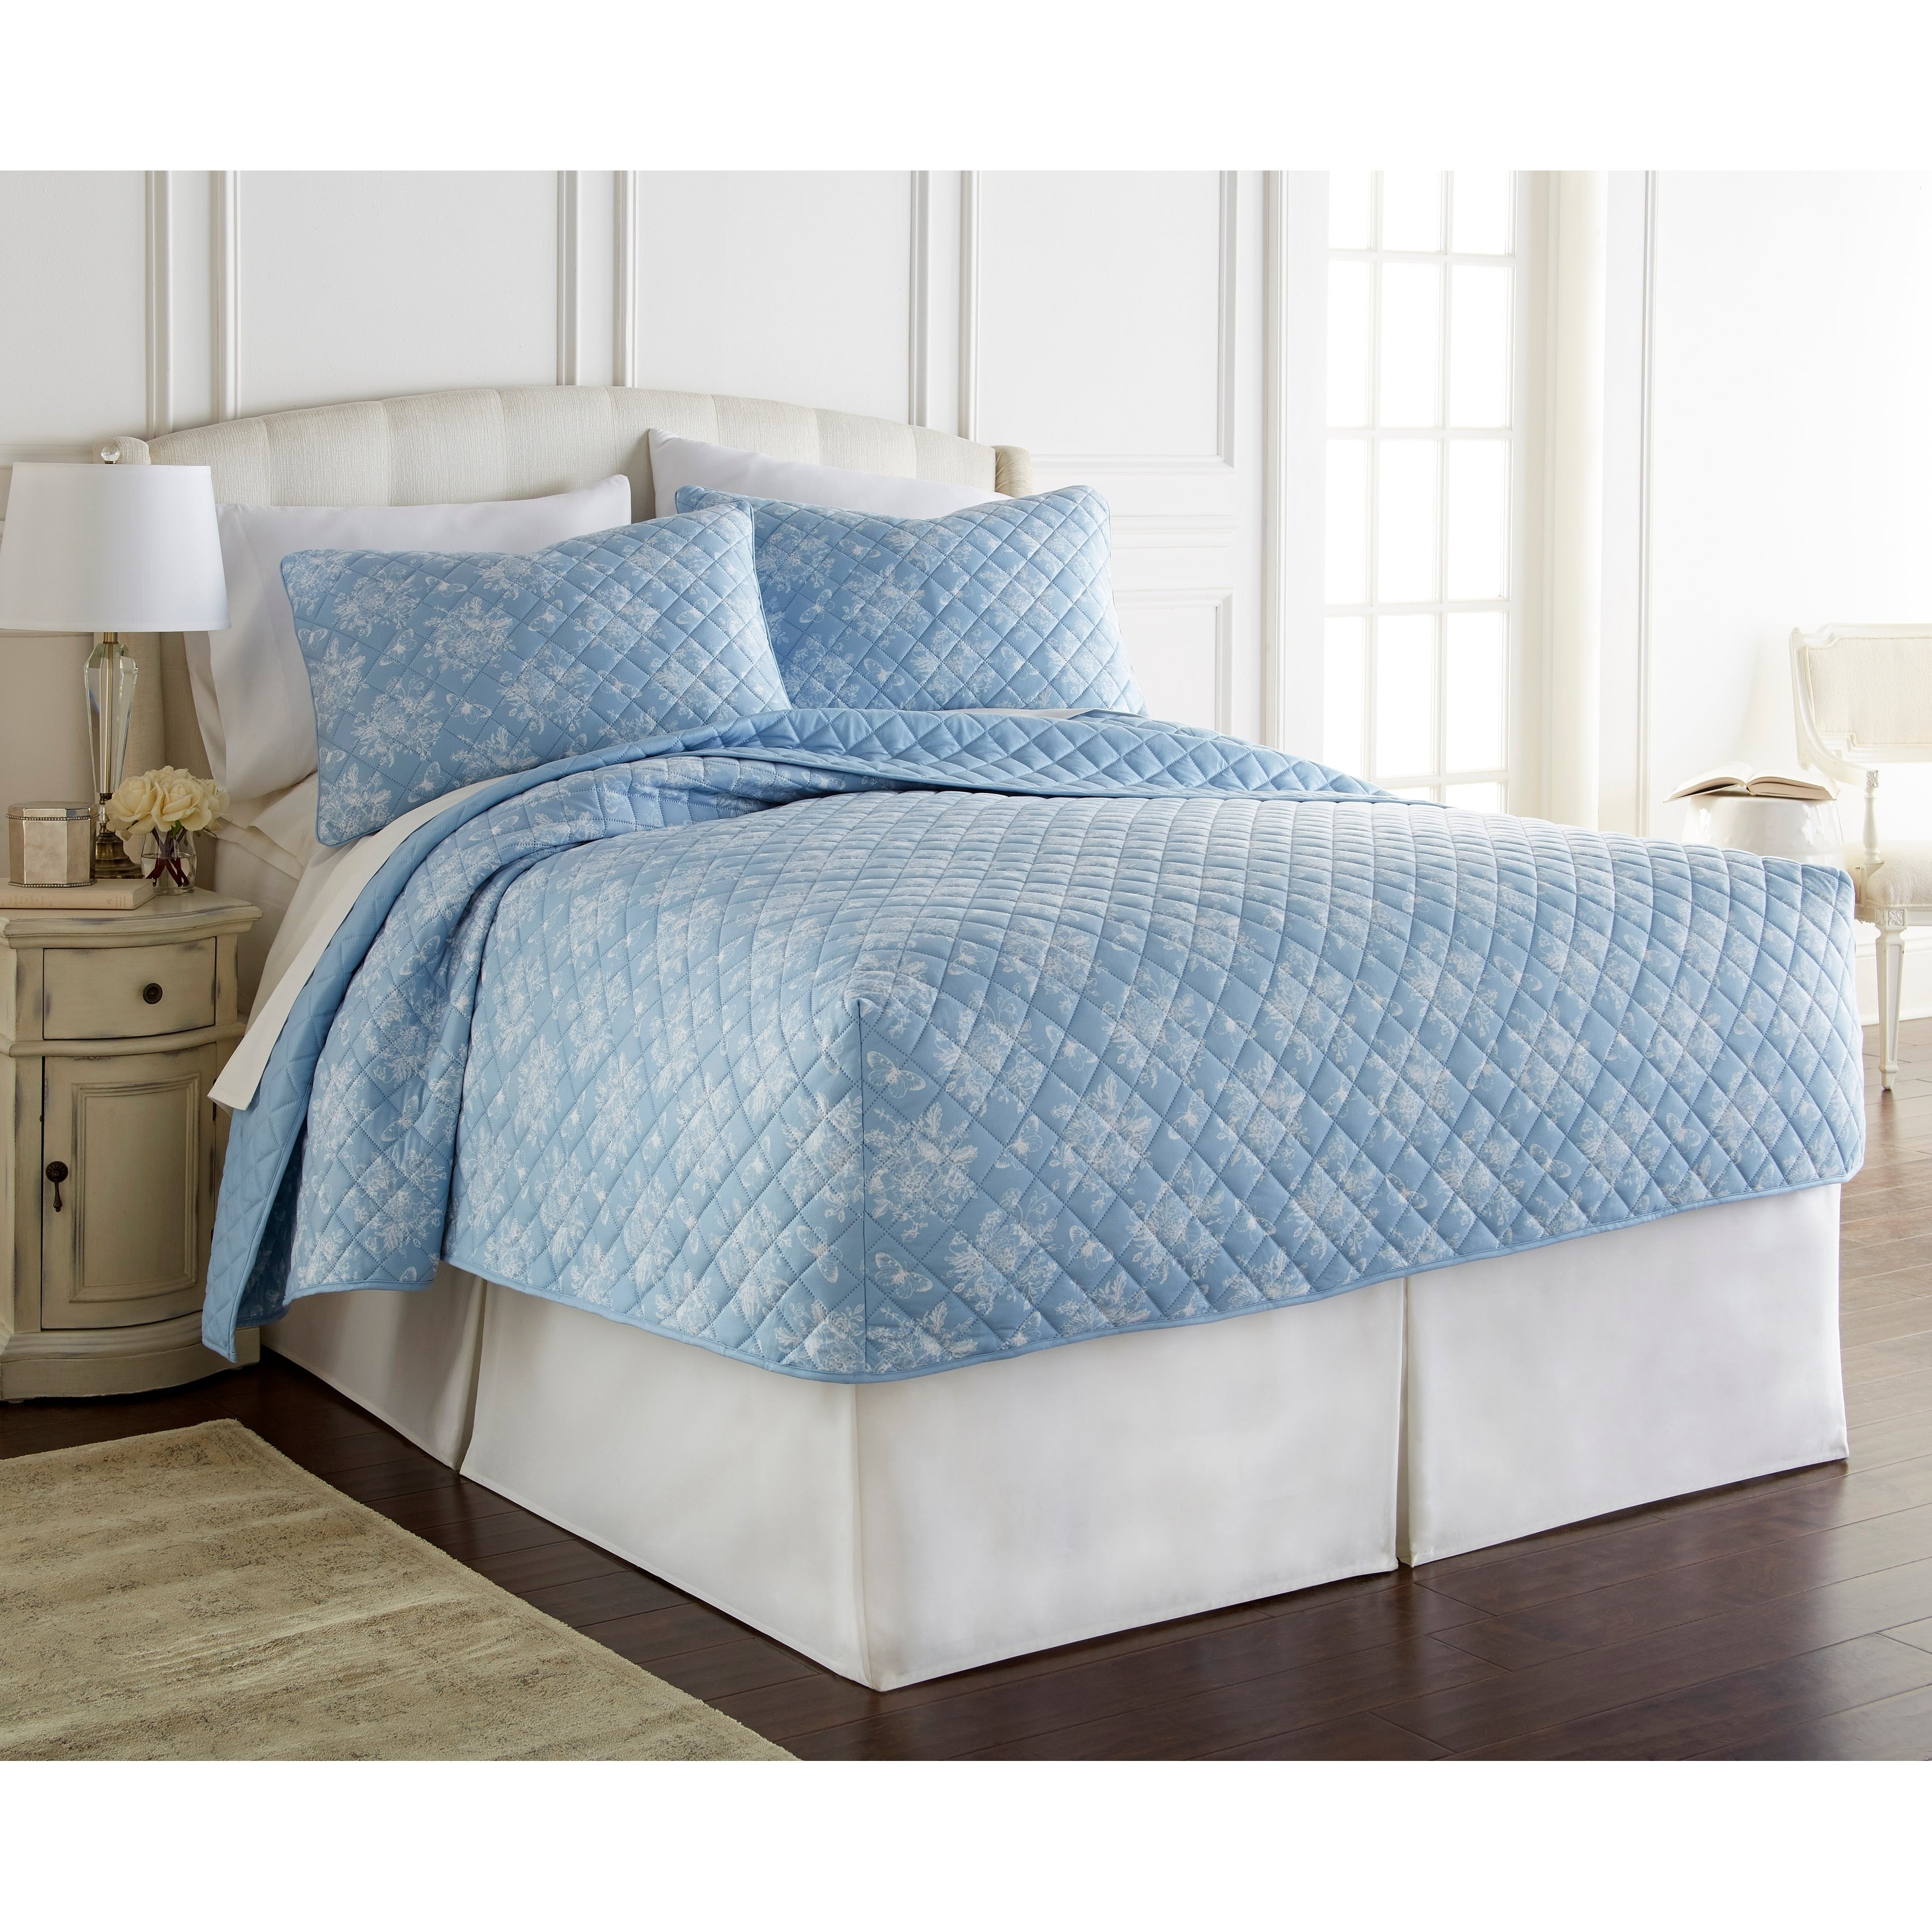 Micro Flannel Toile Fitted Quilt Set Overstock 21976176